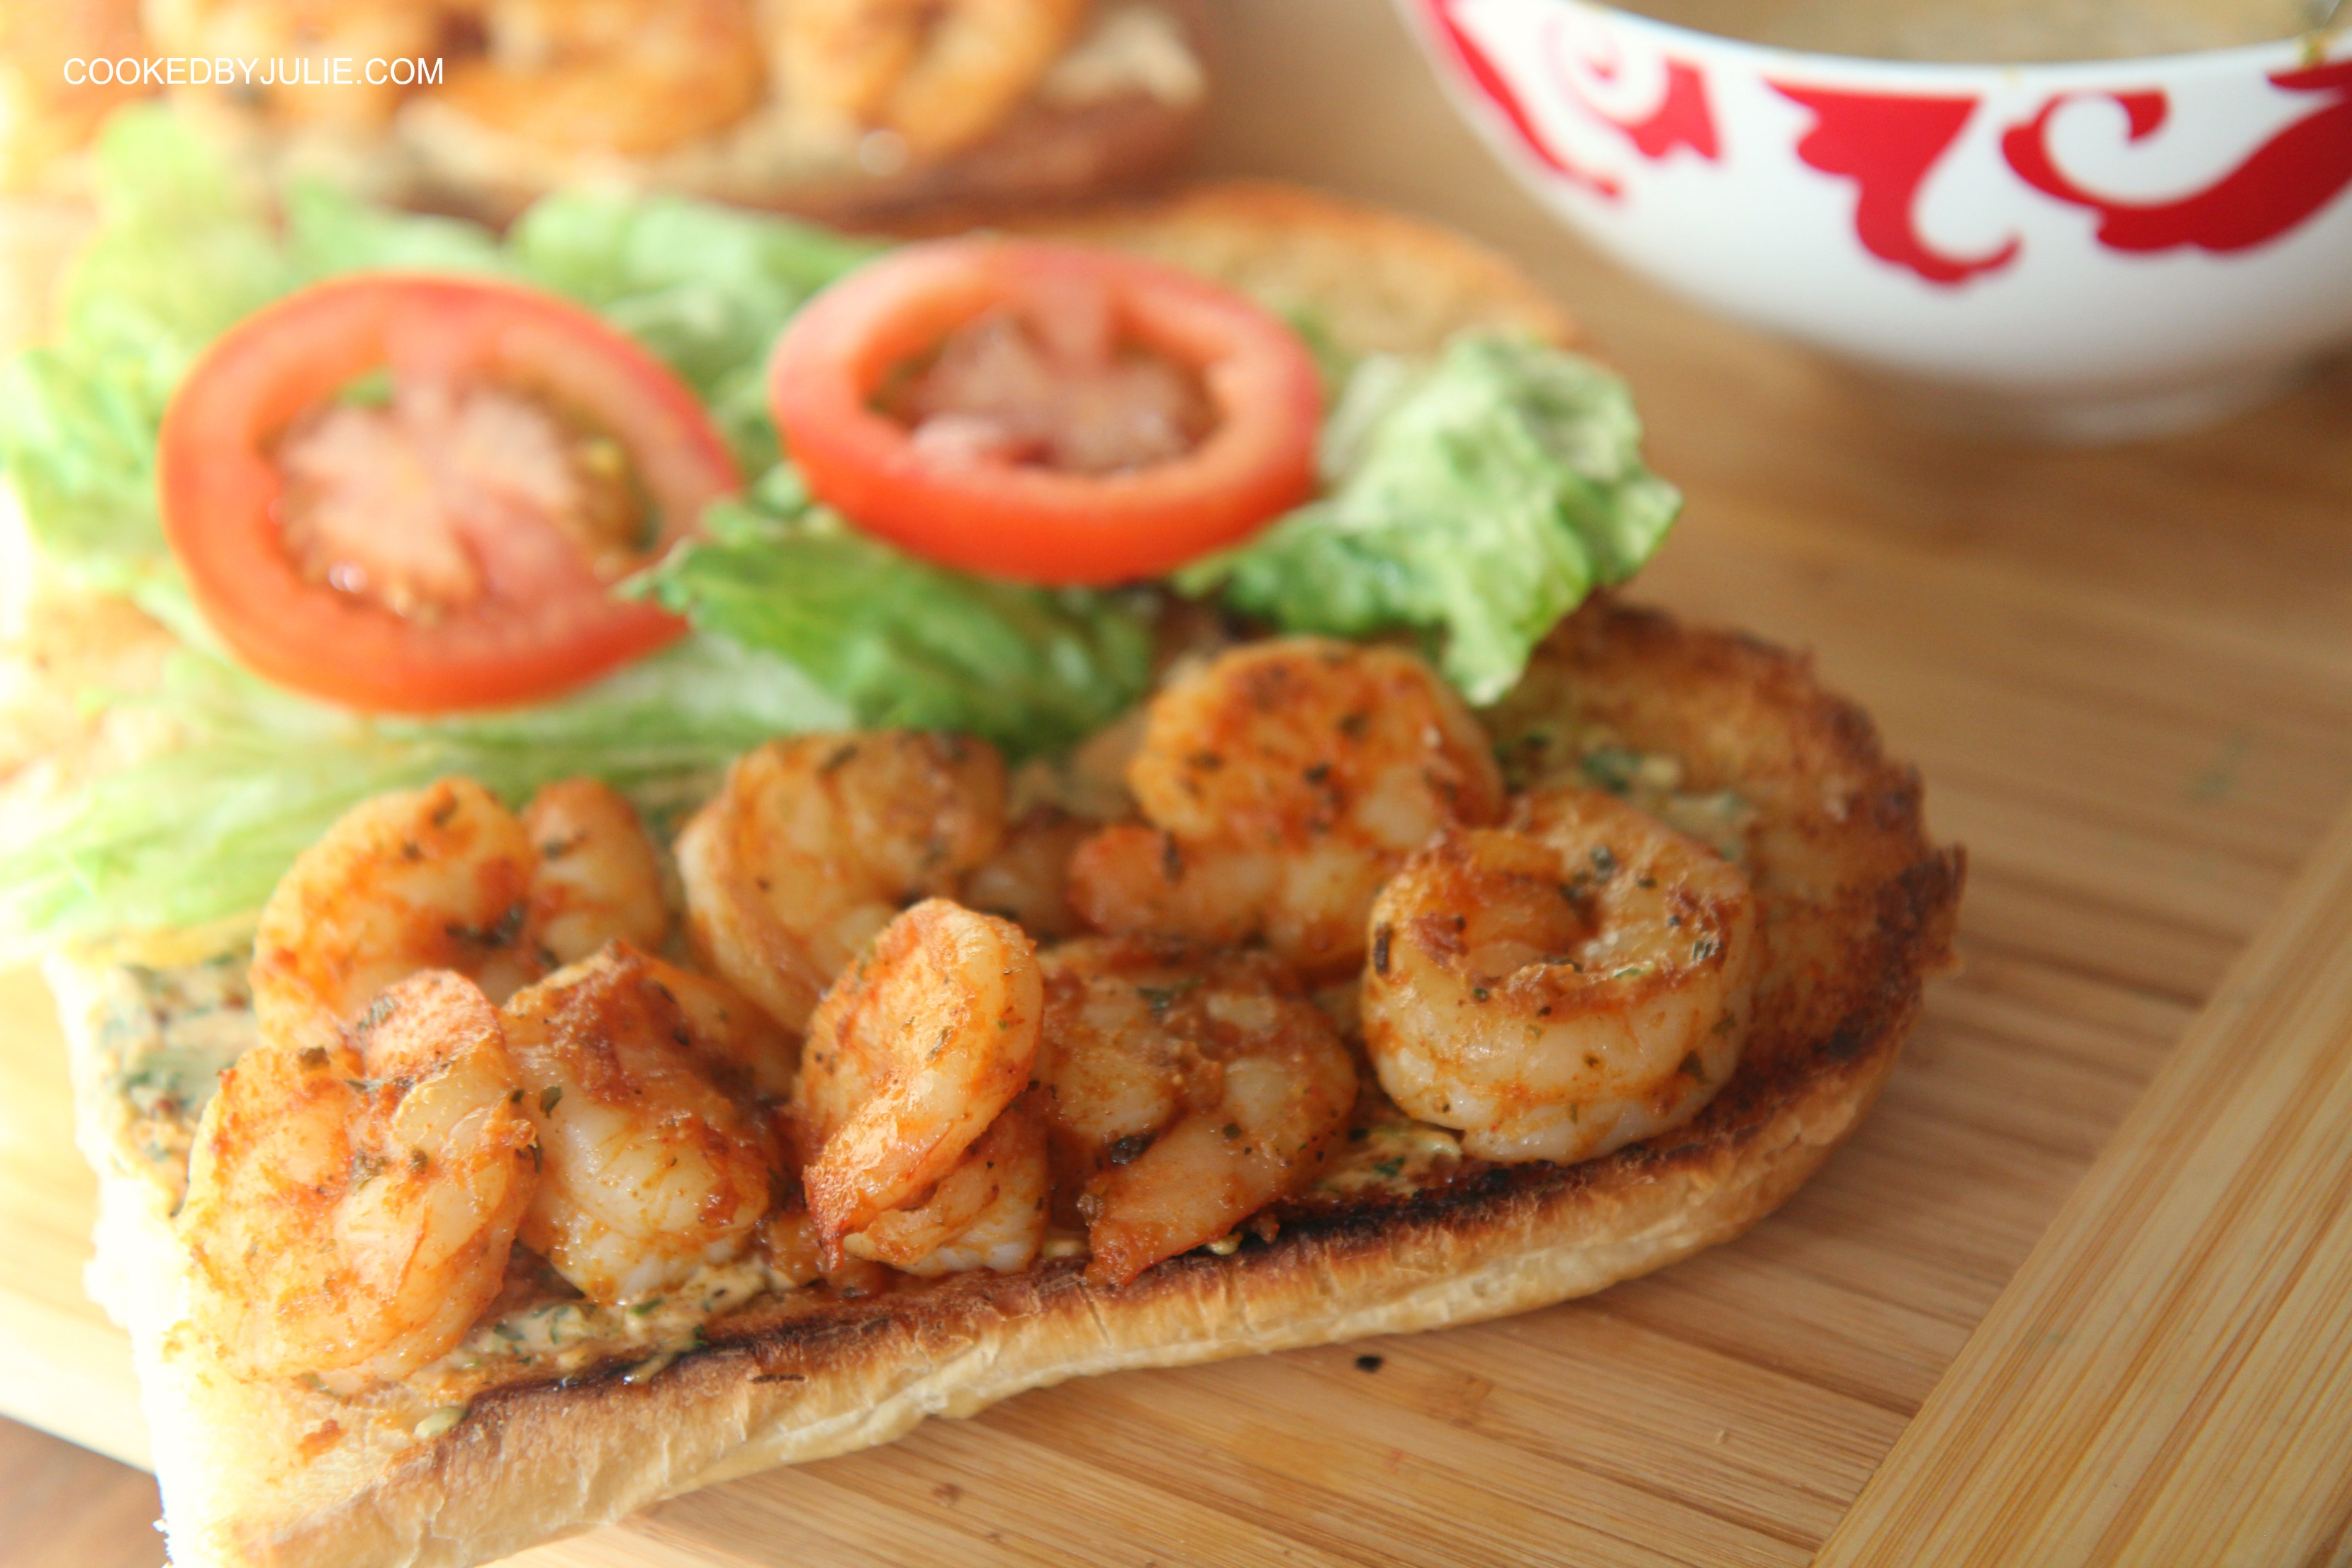 A Creole Treat this po boy is sure to satisfy any crowd.